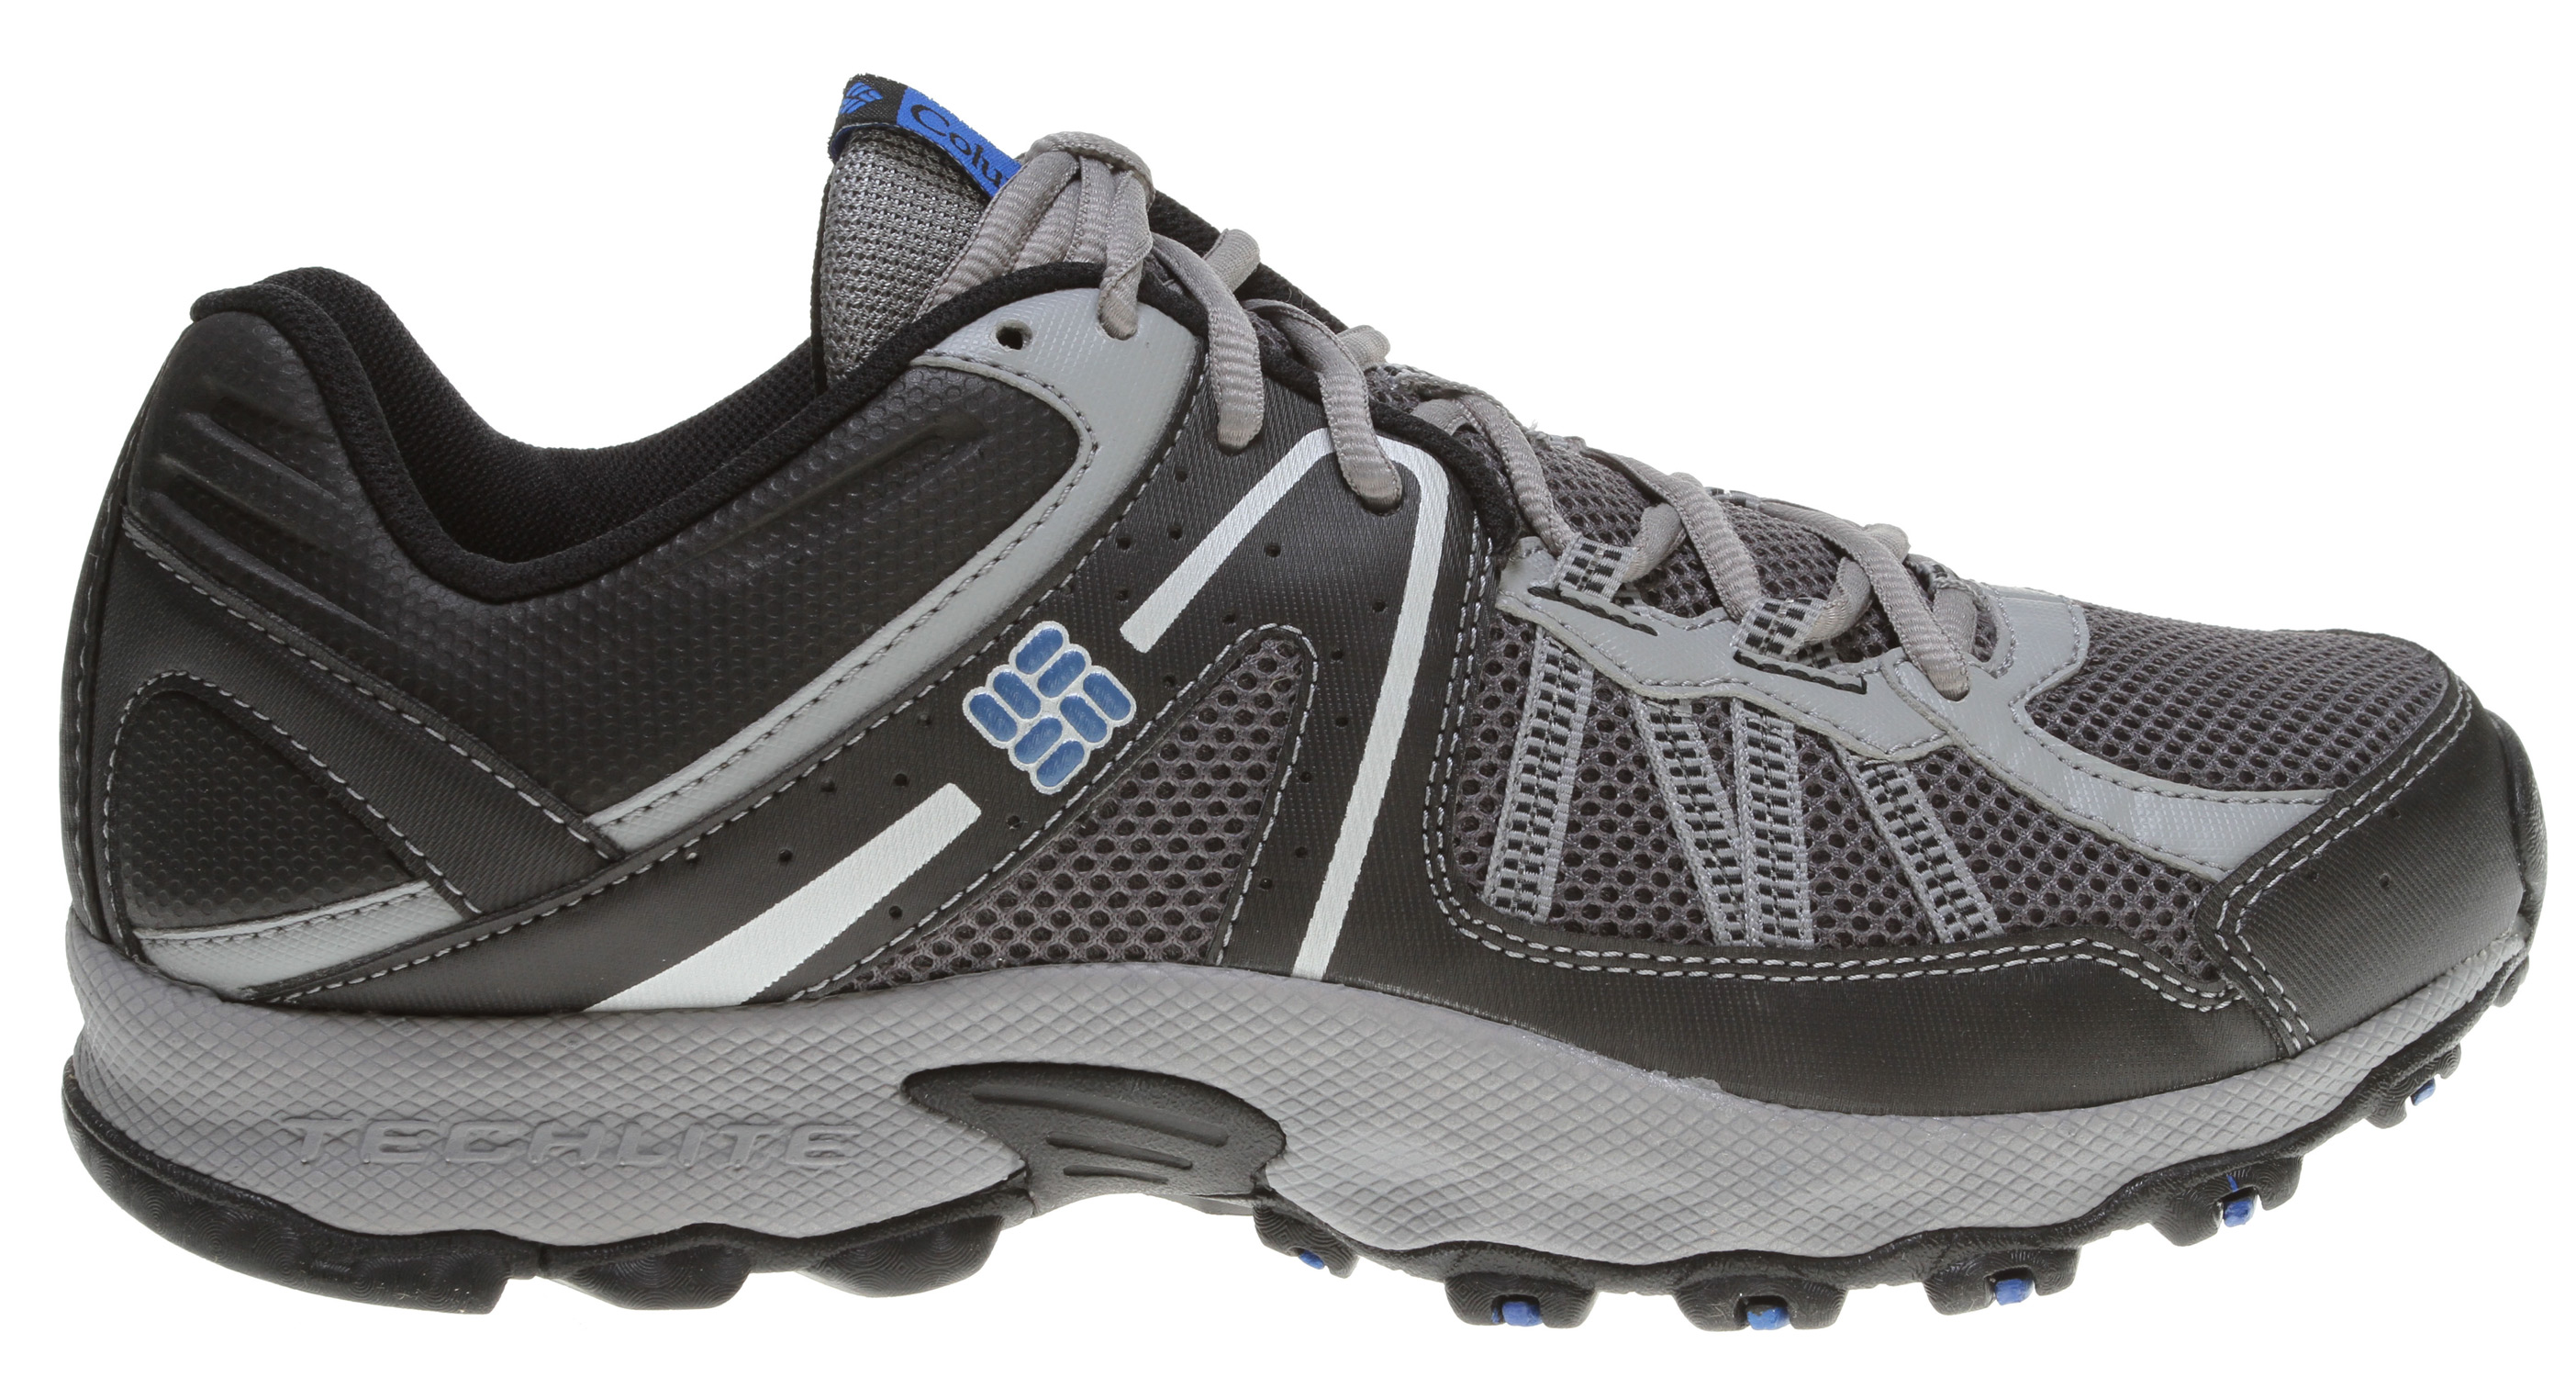 Camp and Hike Designed for the trail runner who needs cushioning and traction in a lightweight package.Key Features of the Columbia Switchback 2 Low Hiking Shoes: UPPER: Synthetic and breathable mesh upper. 3D Techlite Fit piece for comfort, support, and ?t. MIDSOLE: Full length Techlite midsole for cushioning and lightweight ?flexibility. OUTSOLE: Full length Omni-Grip traction with aggressive lug pattern for good traction on adverse terrain. - $51.95